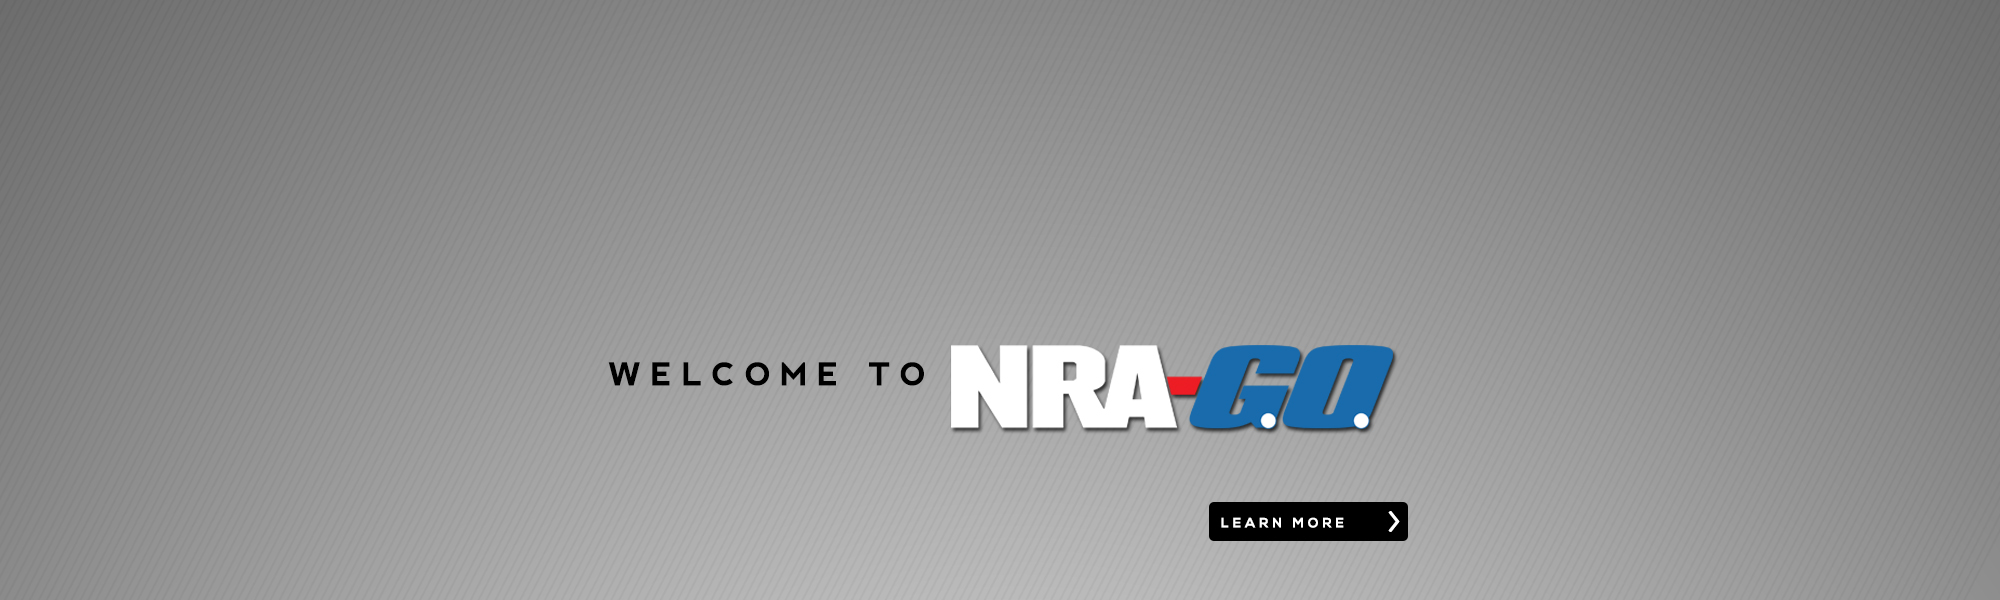 Welcome To NRA GO